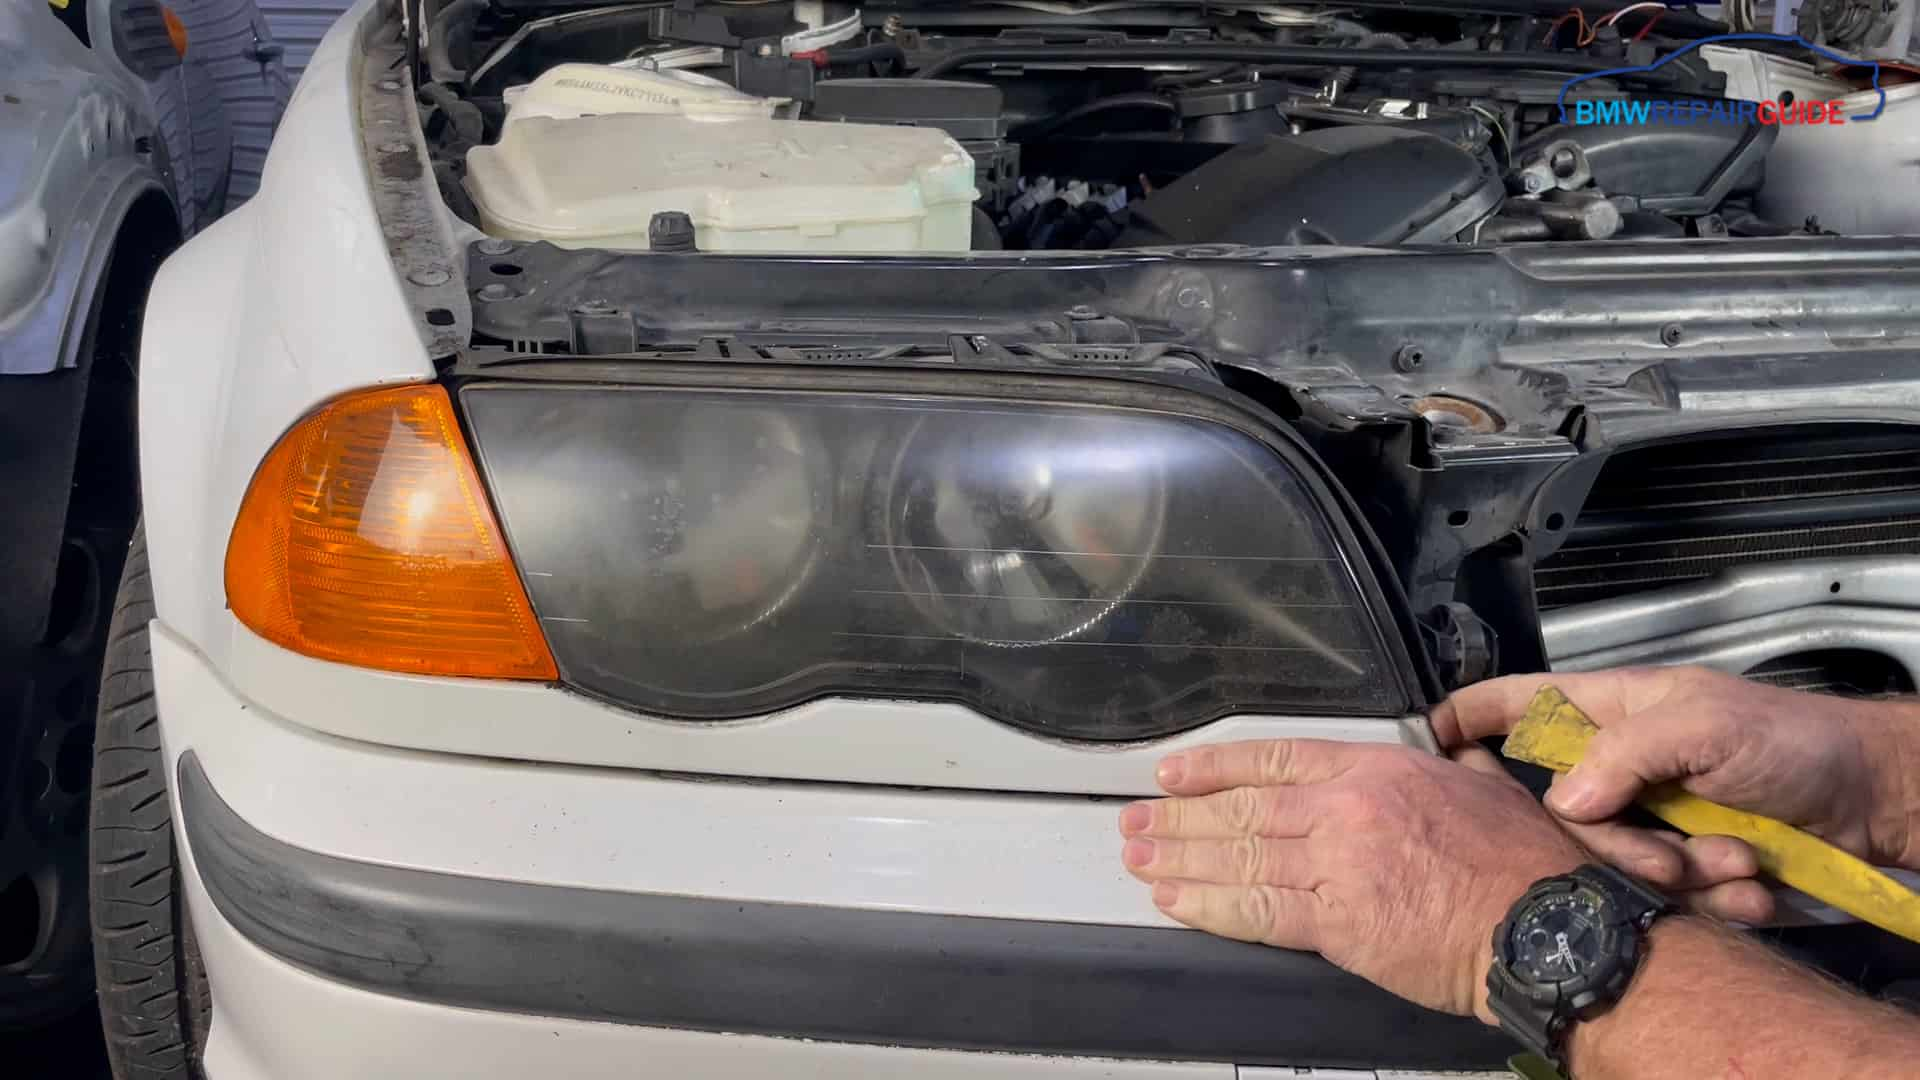 bmw e46 headlight removal - Pry the lower trim loose with a plastic trim removal tool